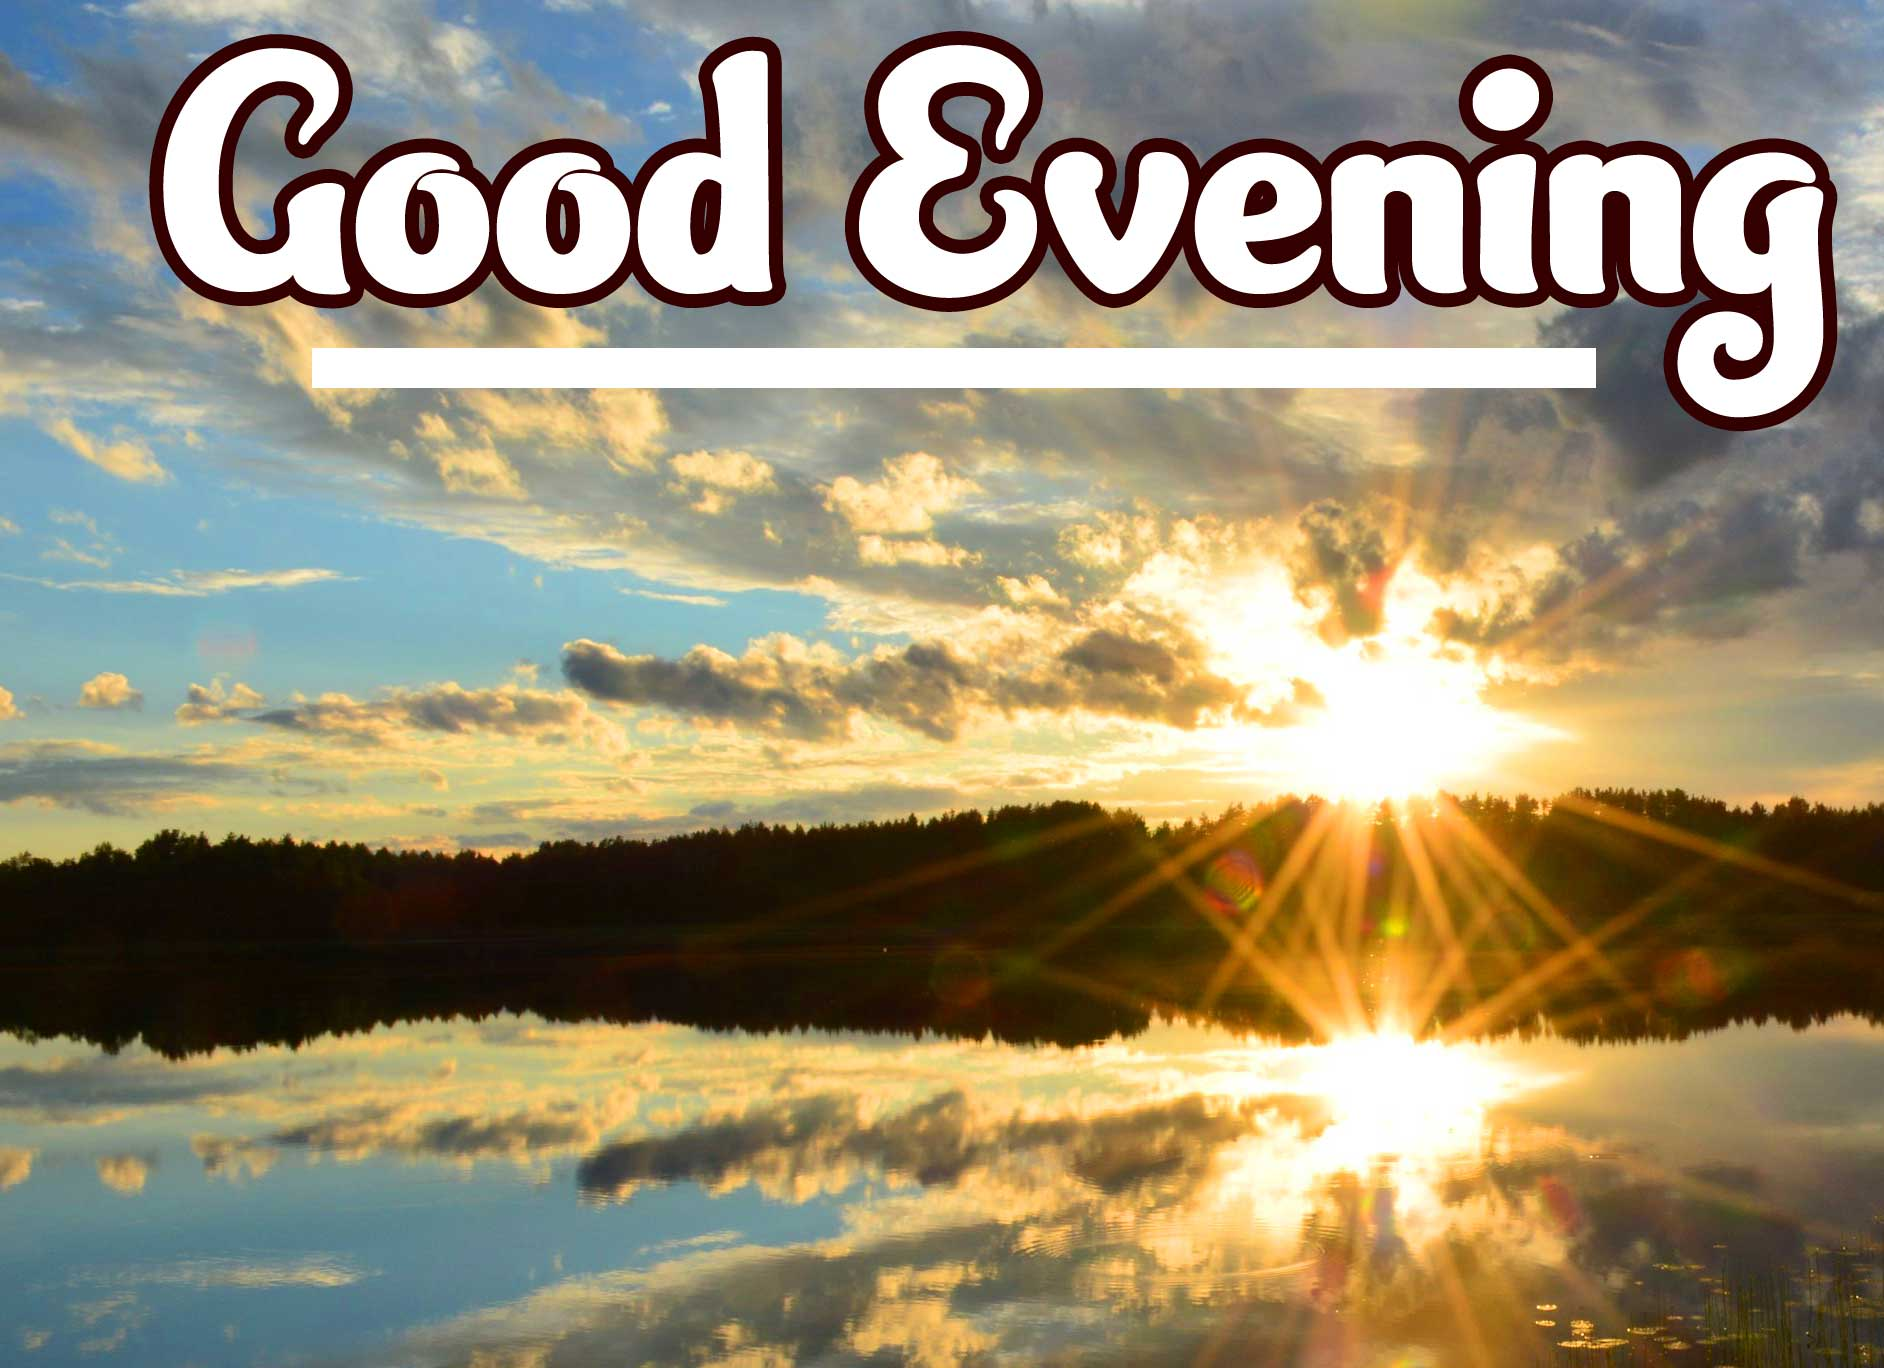 Good Evening Wishes Images photo Free Download